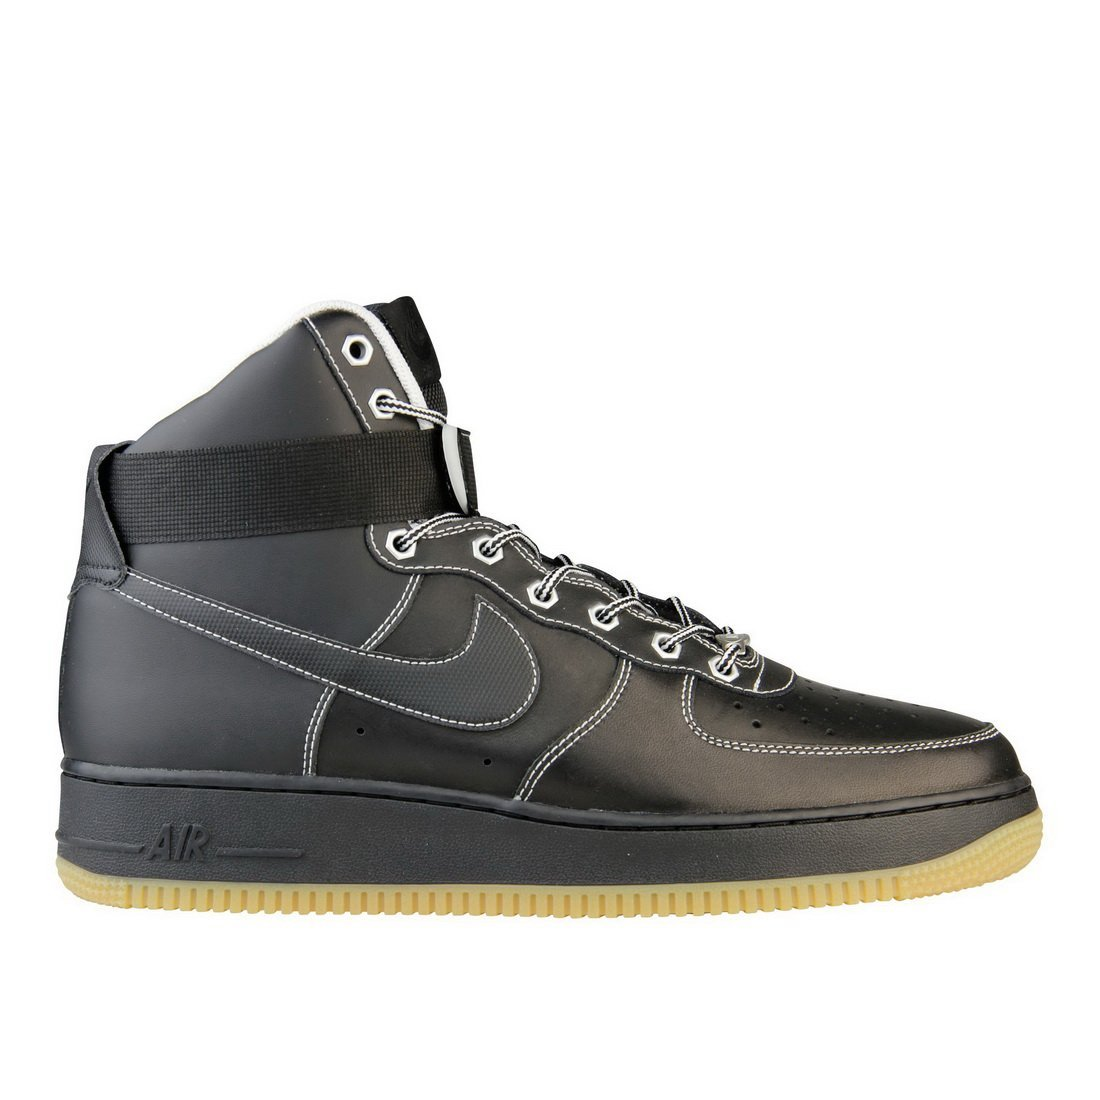 official photos 0be1b cacfe Get Quotations · NIKE SPORTSWEAR MENS AIR FORCE ONE HIGH SNEAKER Black -  Footwear Sneakers 7.5